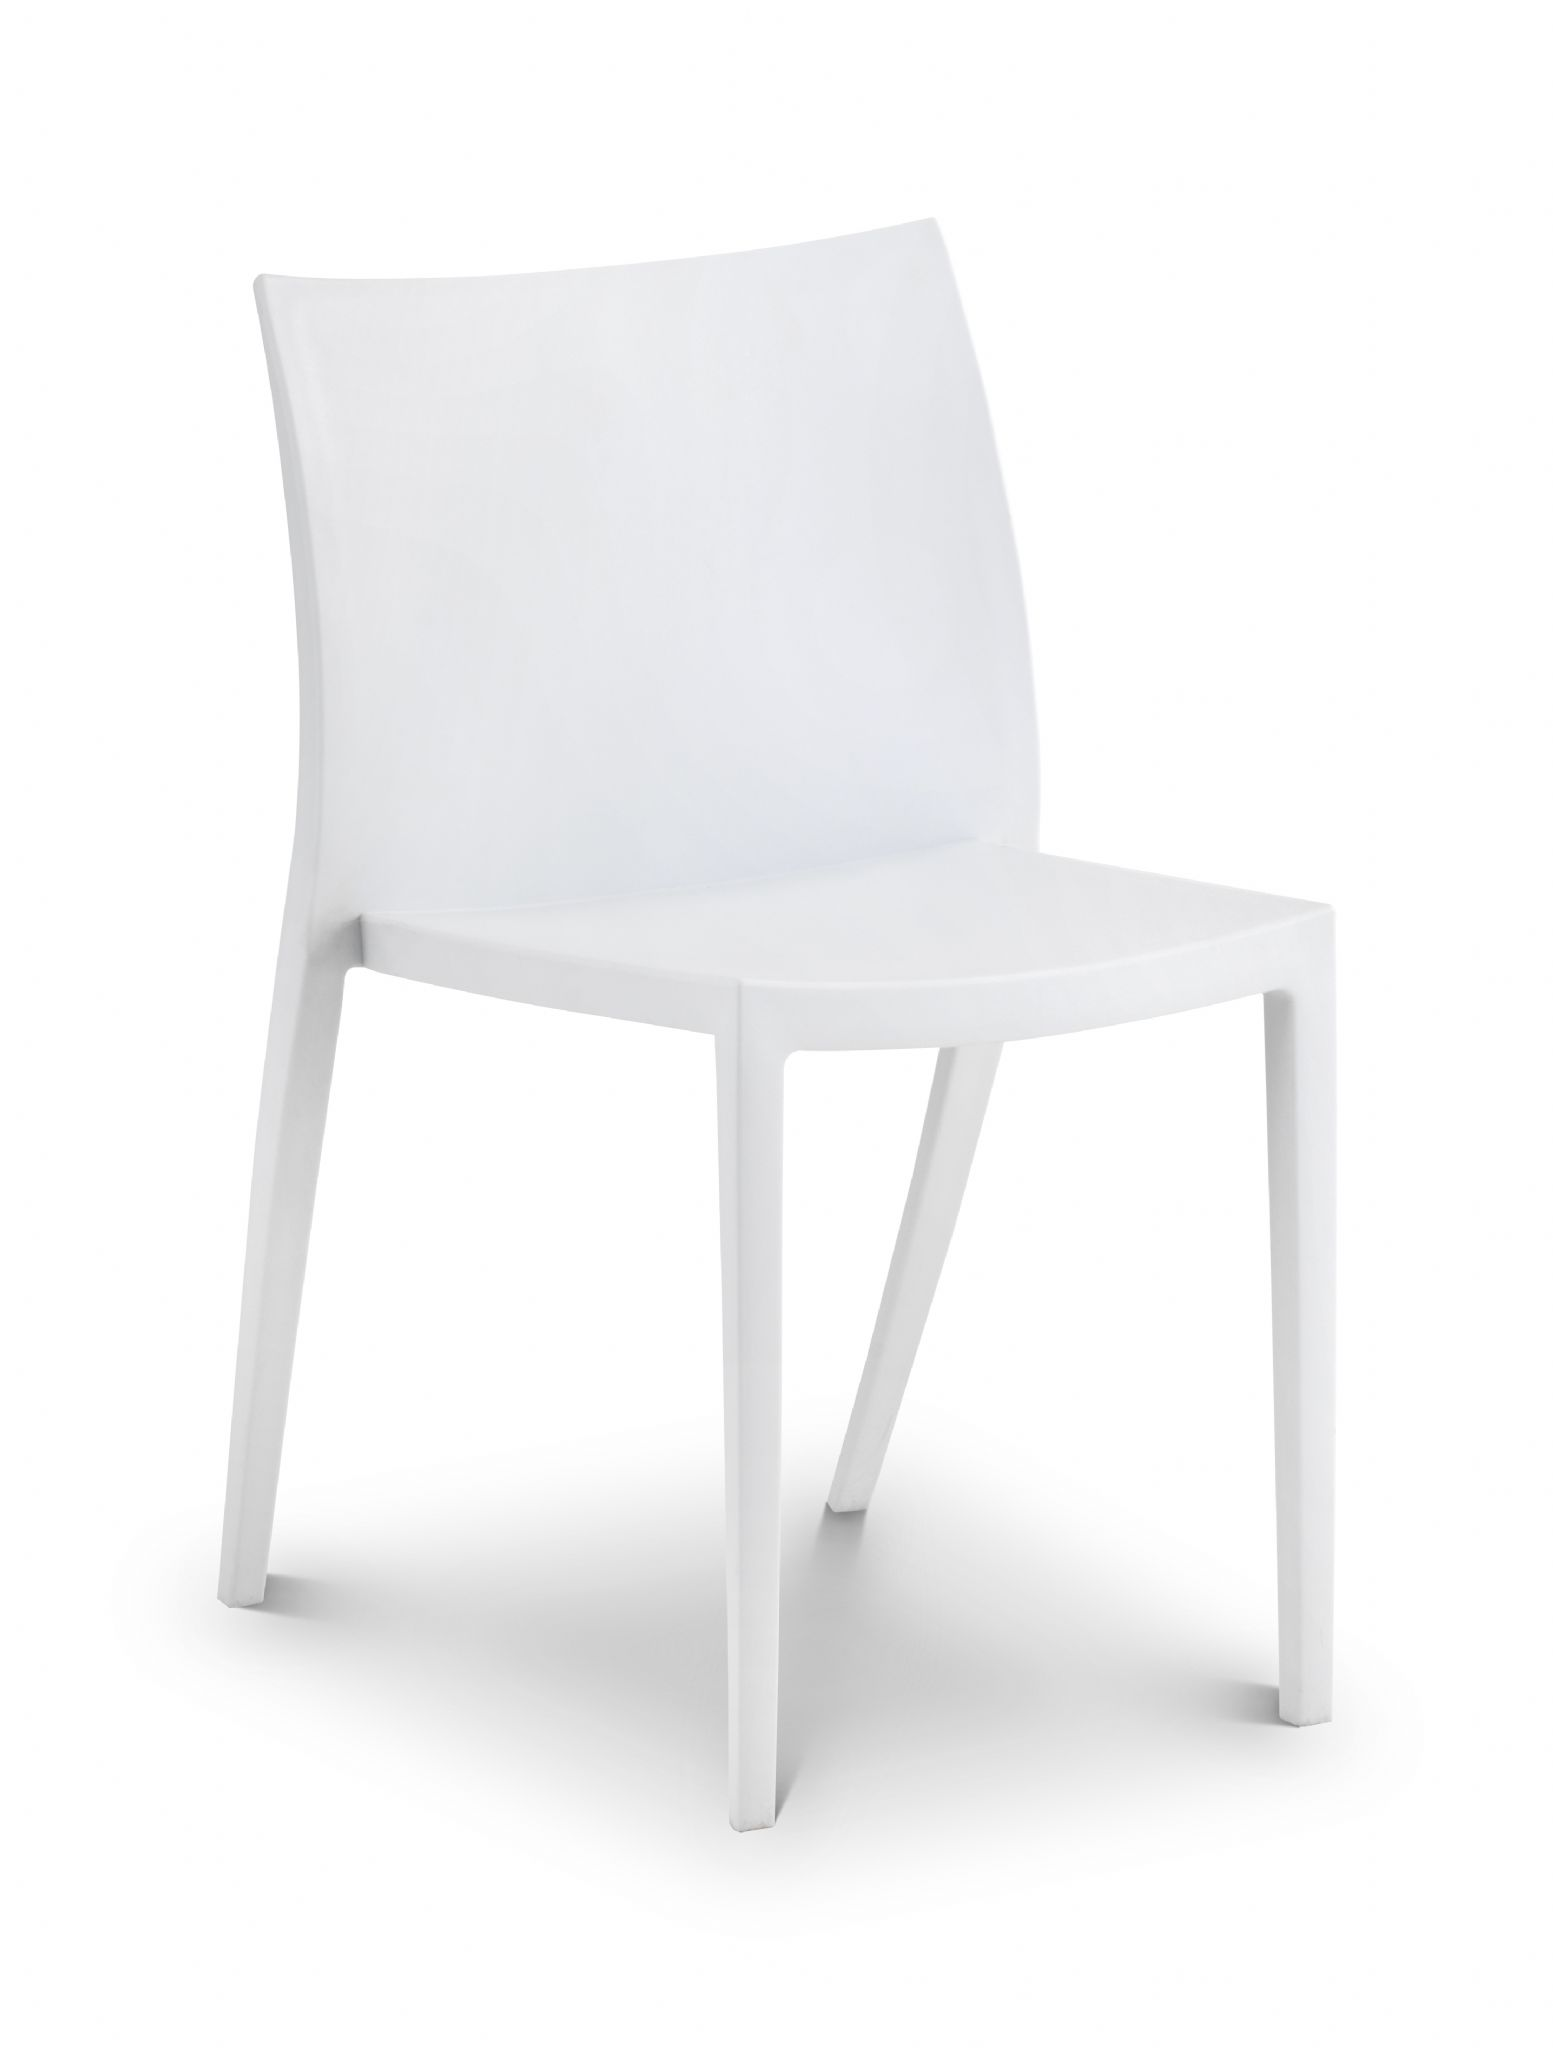 White Stackable Chairs Assisi White Stylish Stacking Chair Jb214